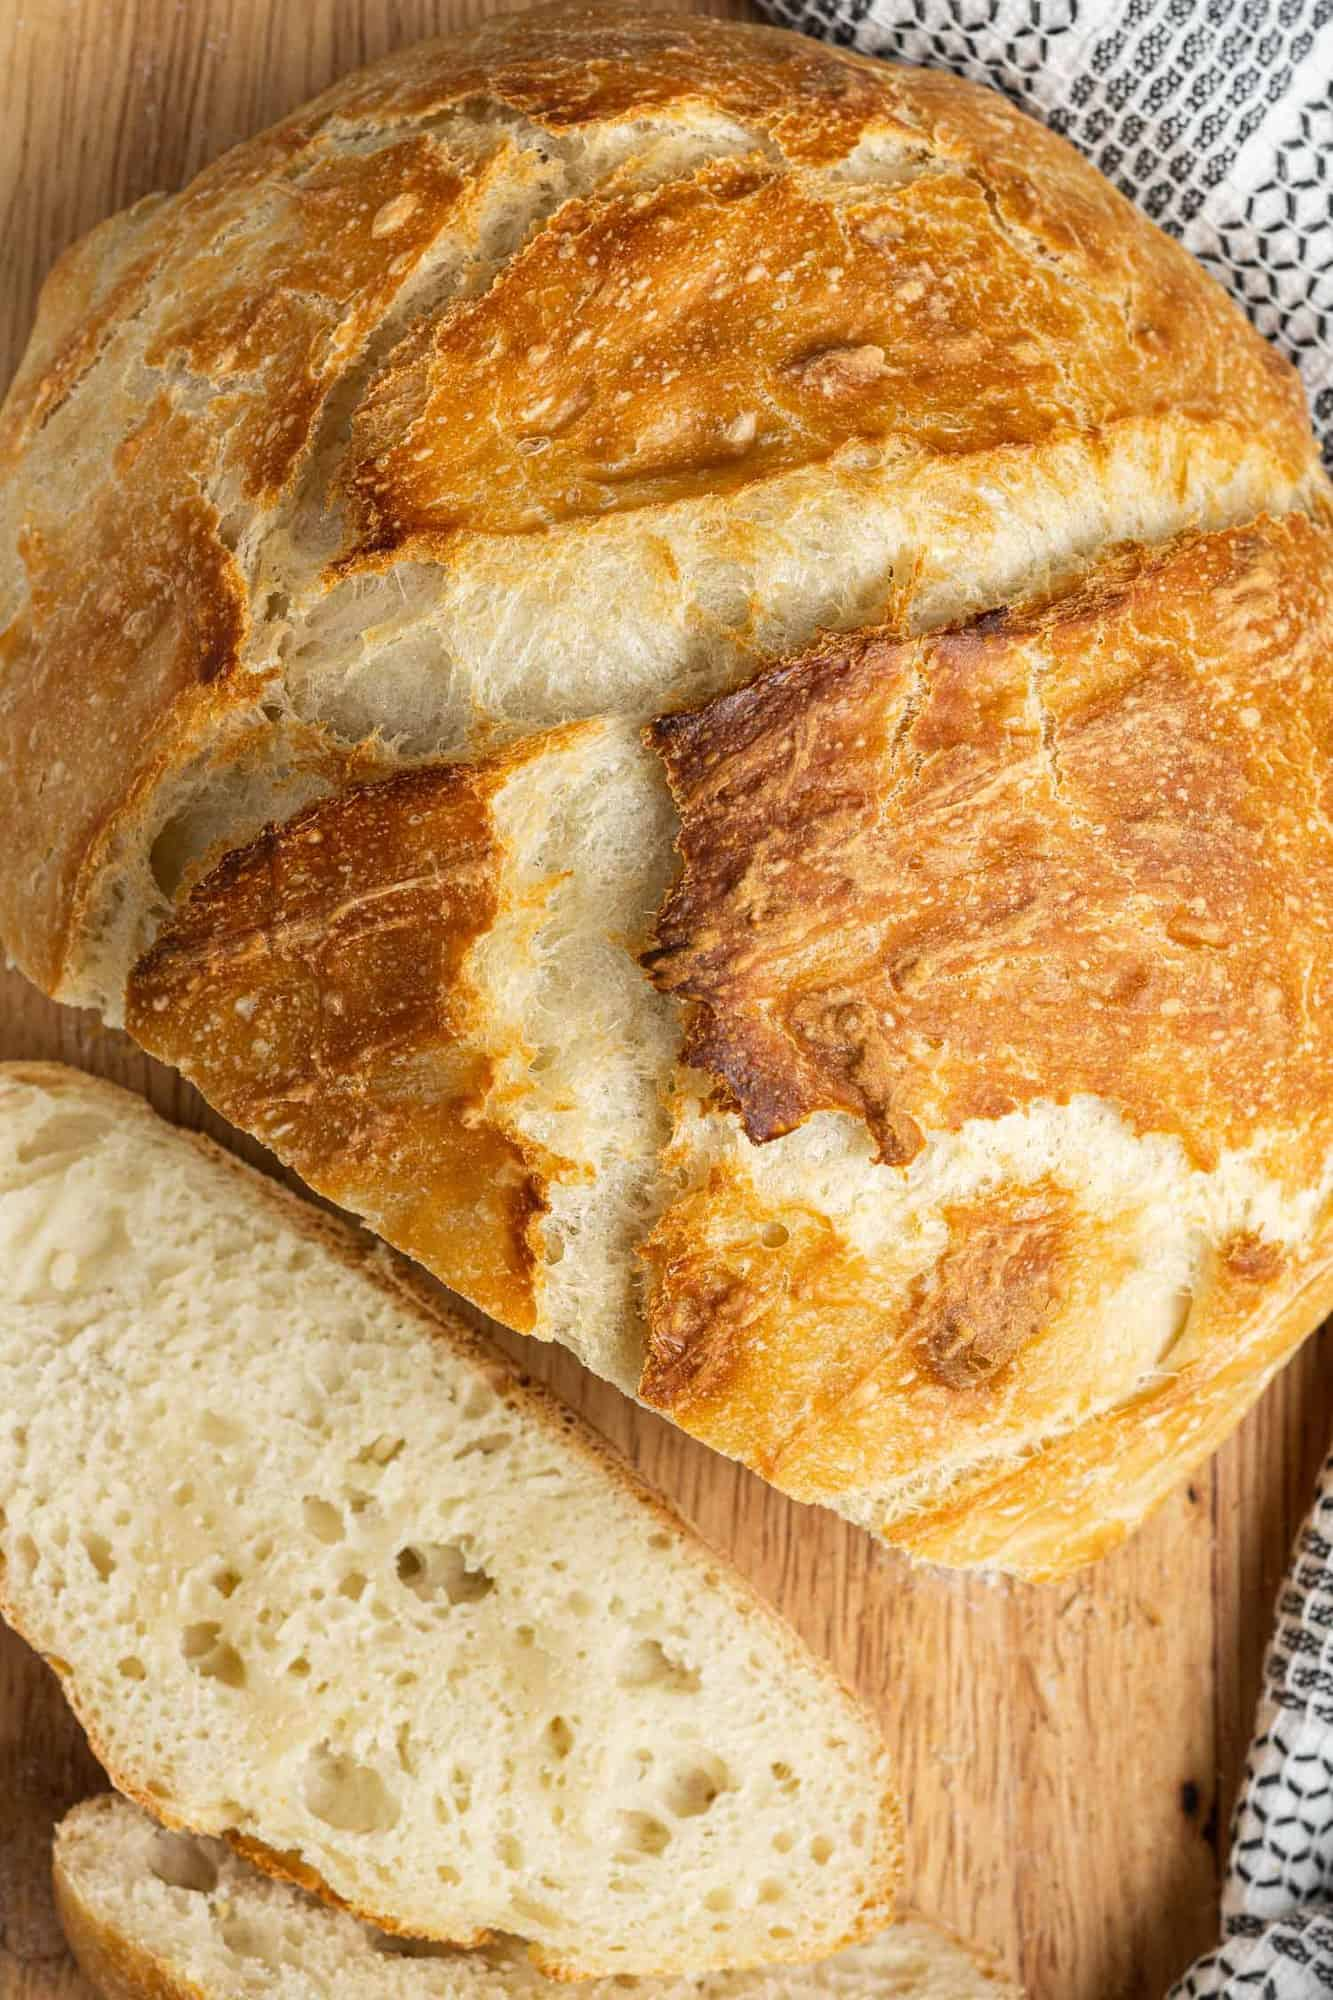 Overhead view of round loaf of bread with one or two slices removed.